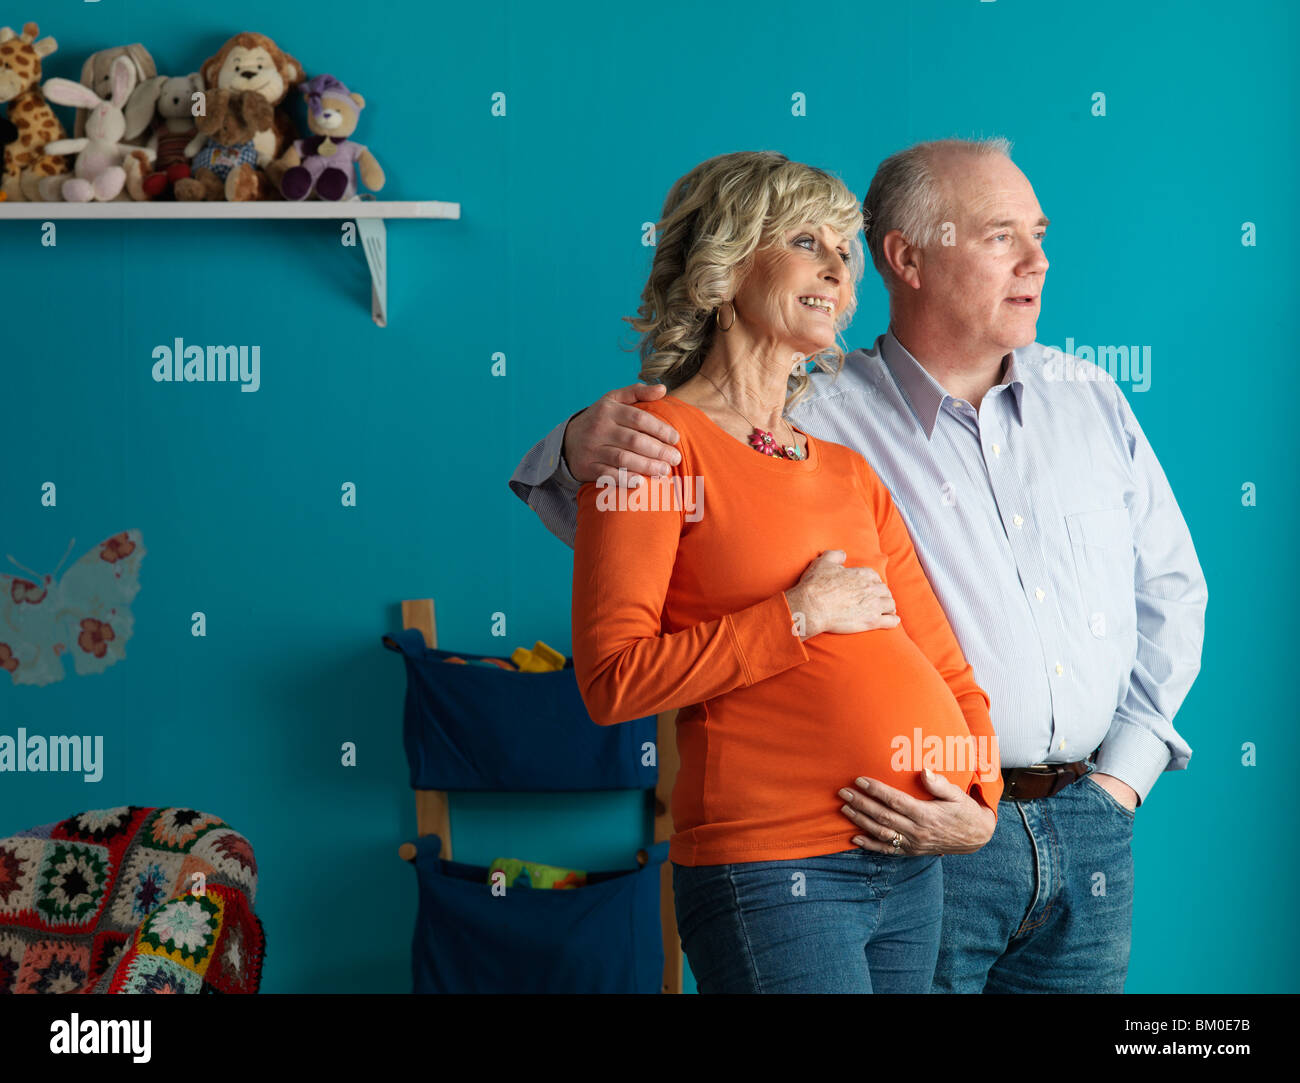 Pregnant older woman with male partner - Stock Image